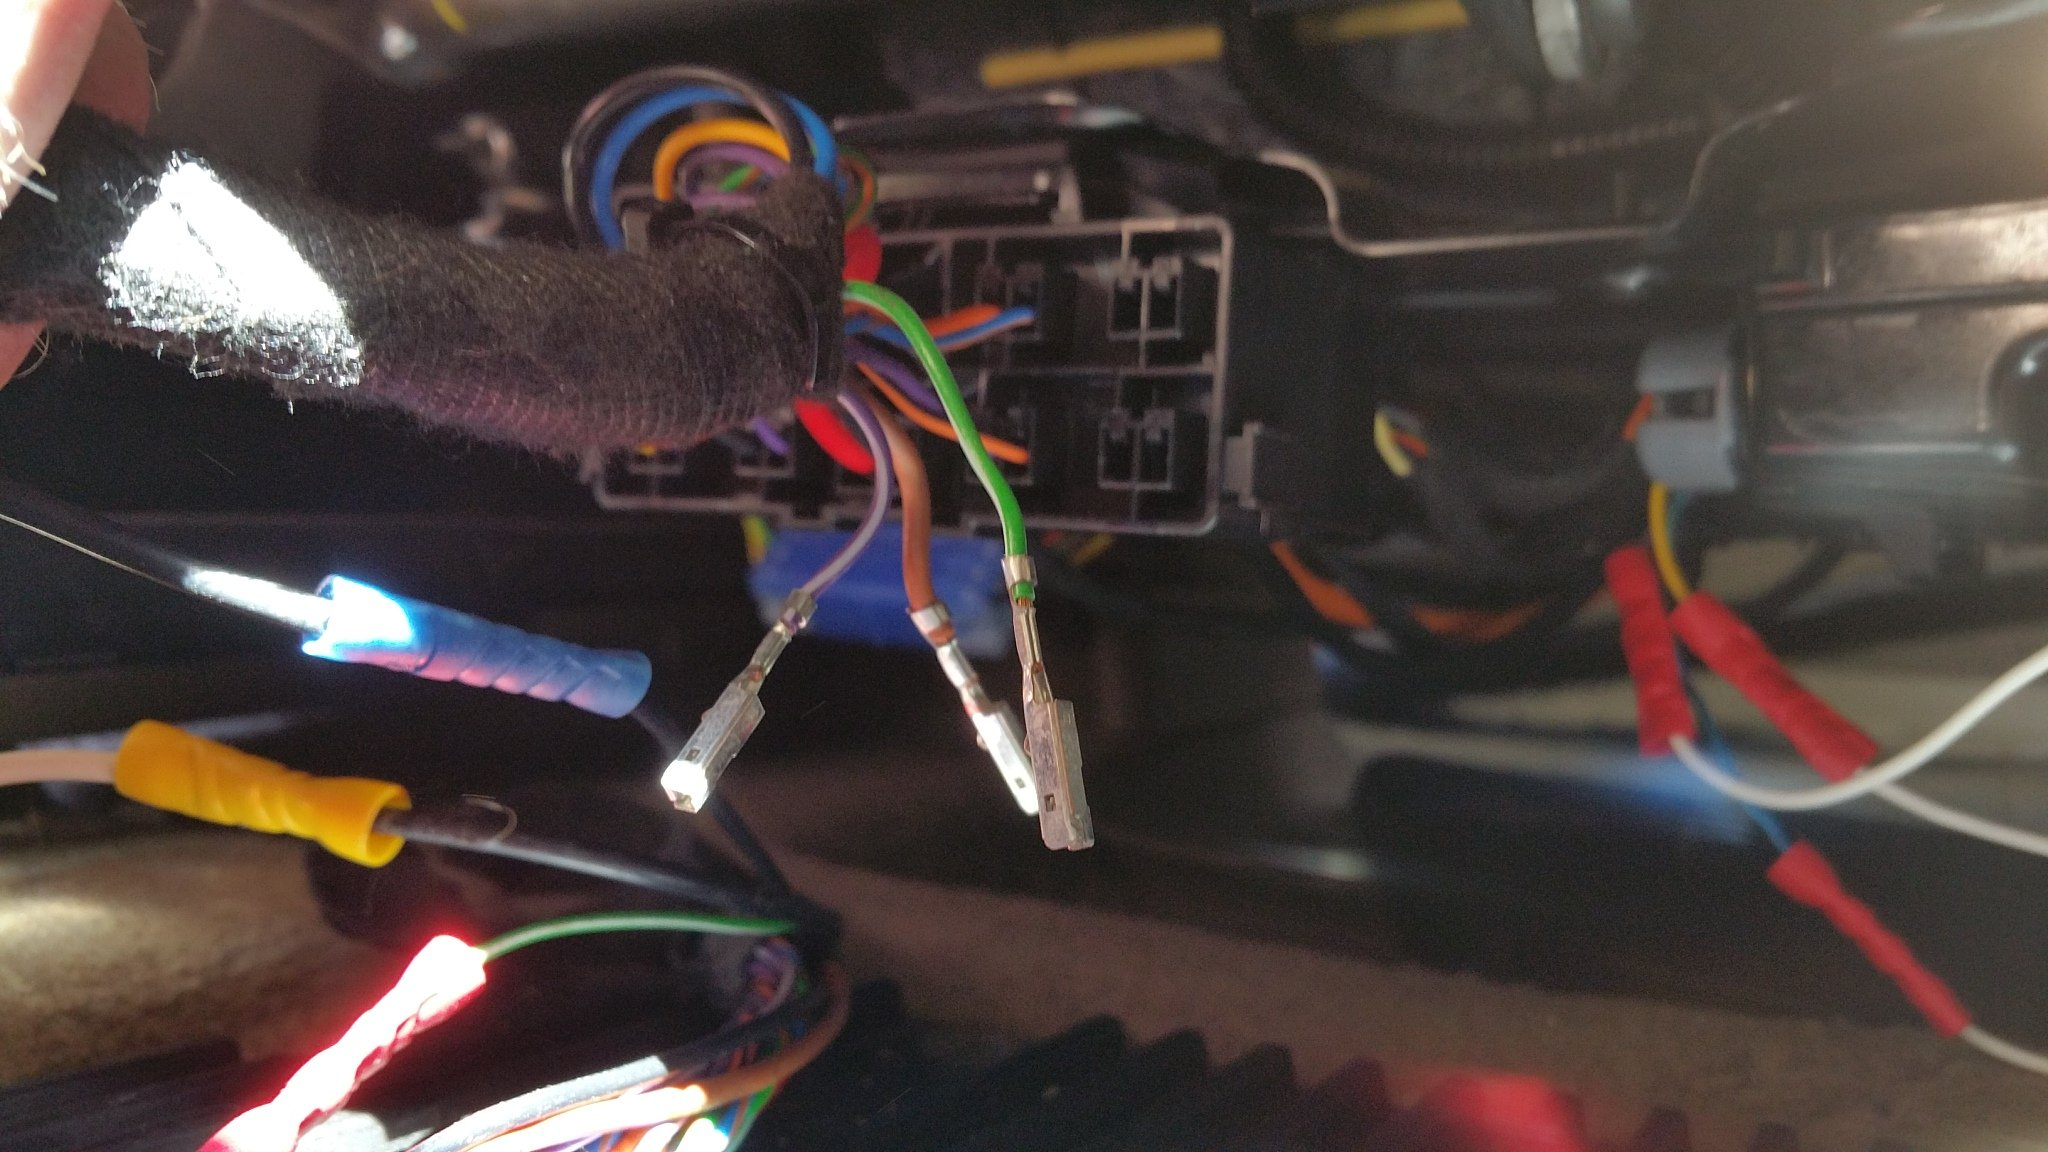 2012 Volvo XC90 loose wires.jpg